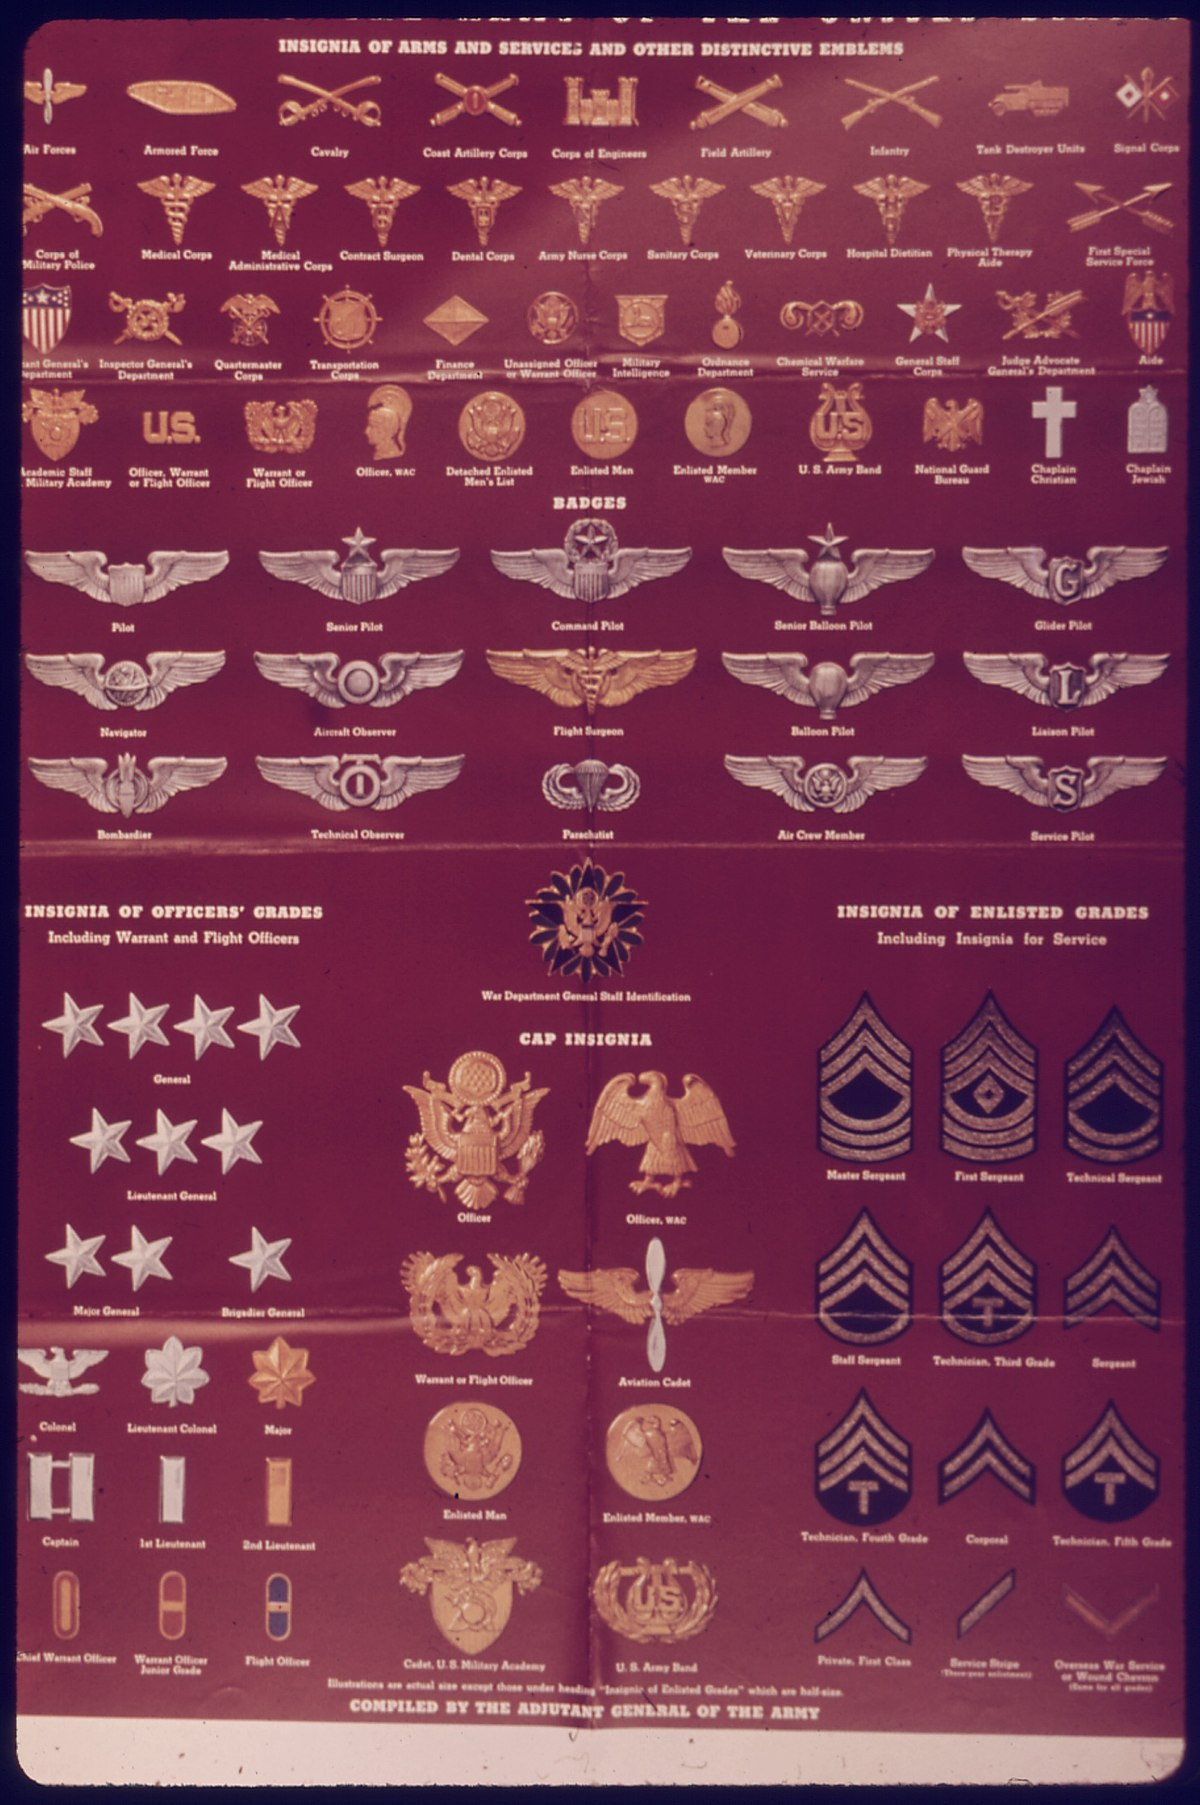 United States Army Enlisted Rank Insignia Of World War II